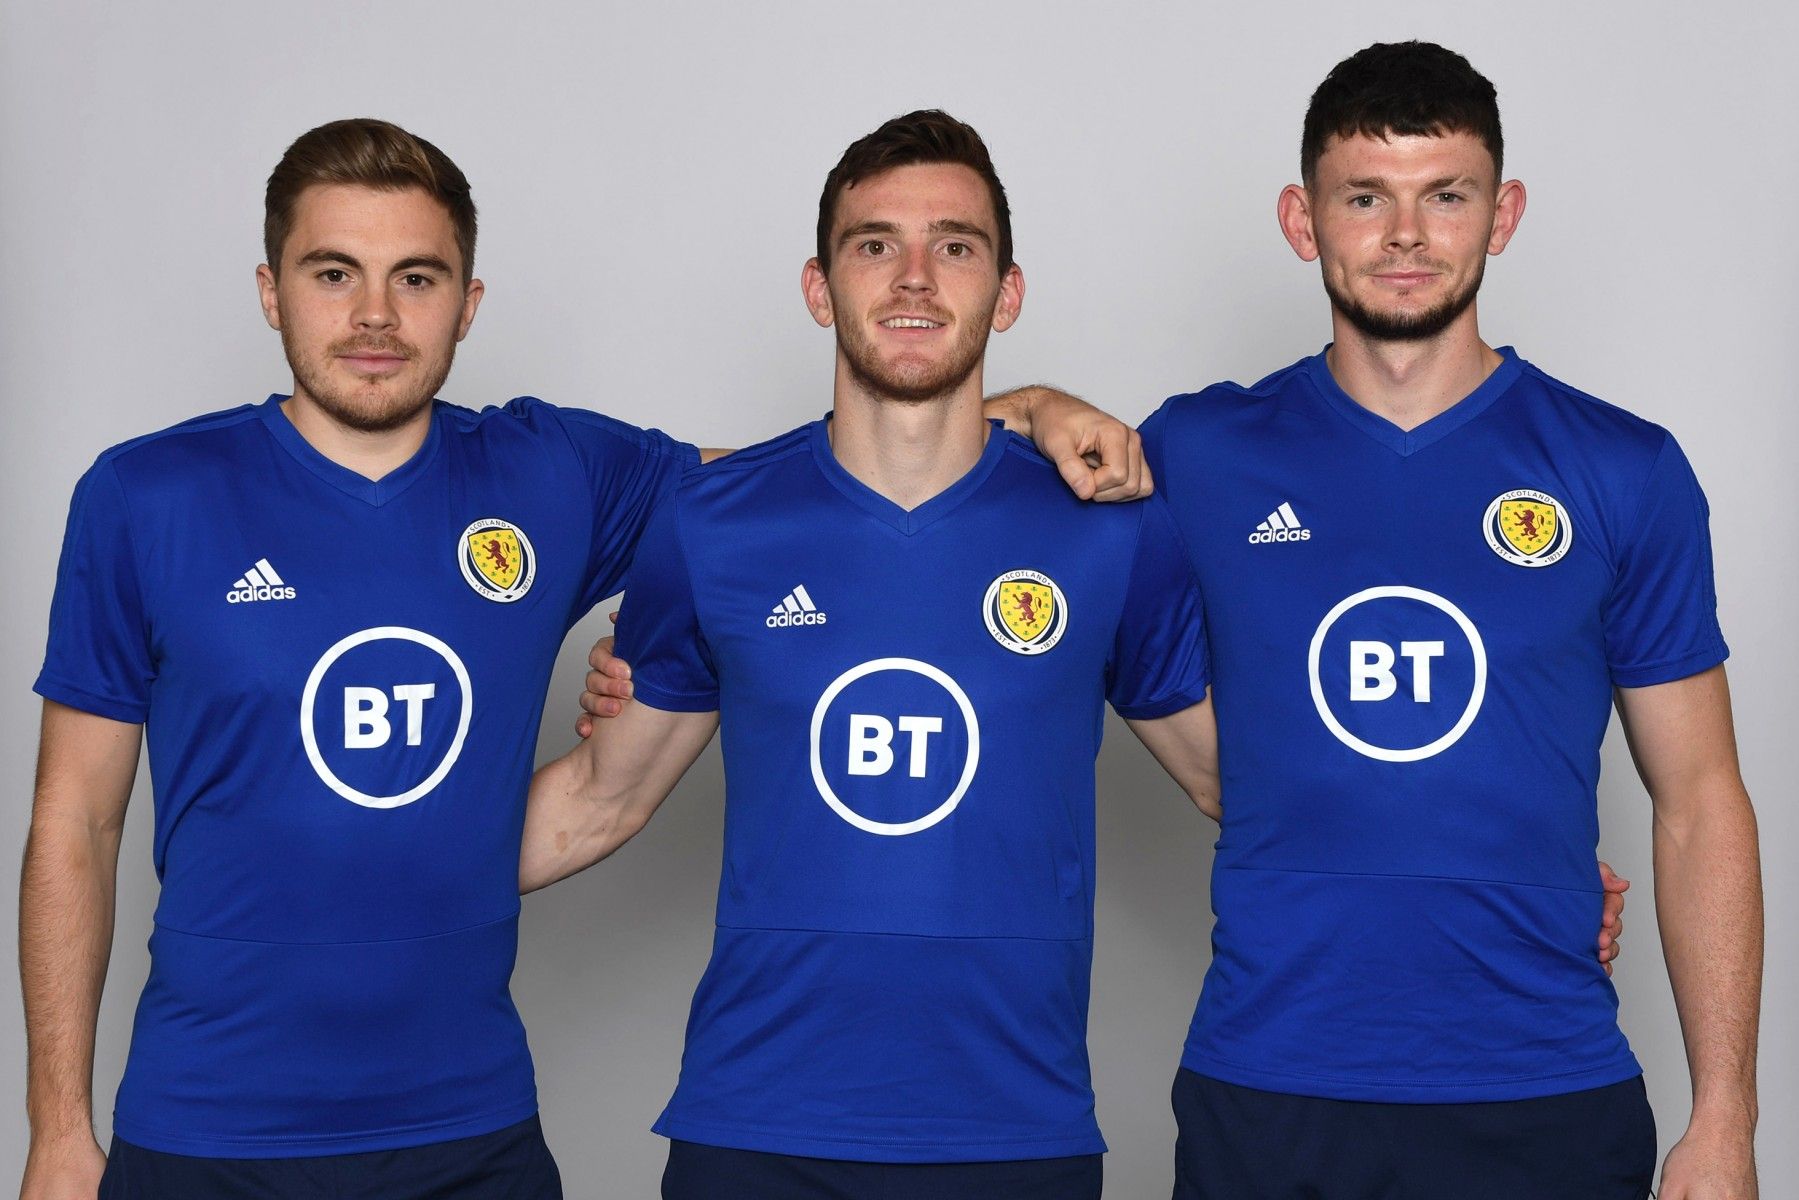 BT signs five year deal to sponsor SFA